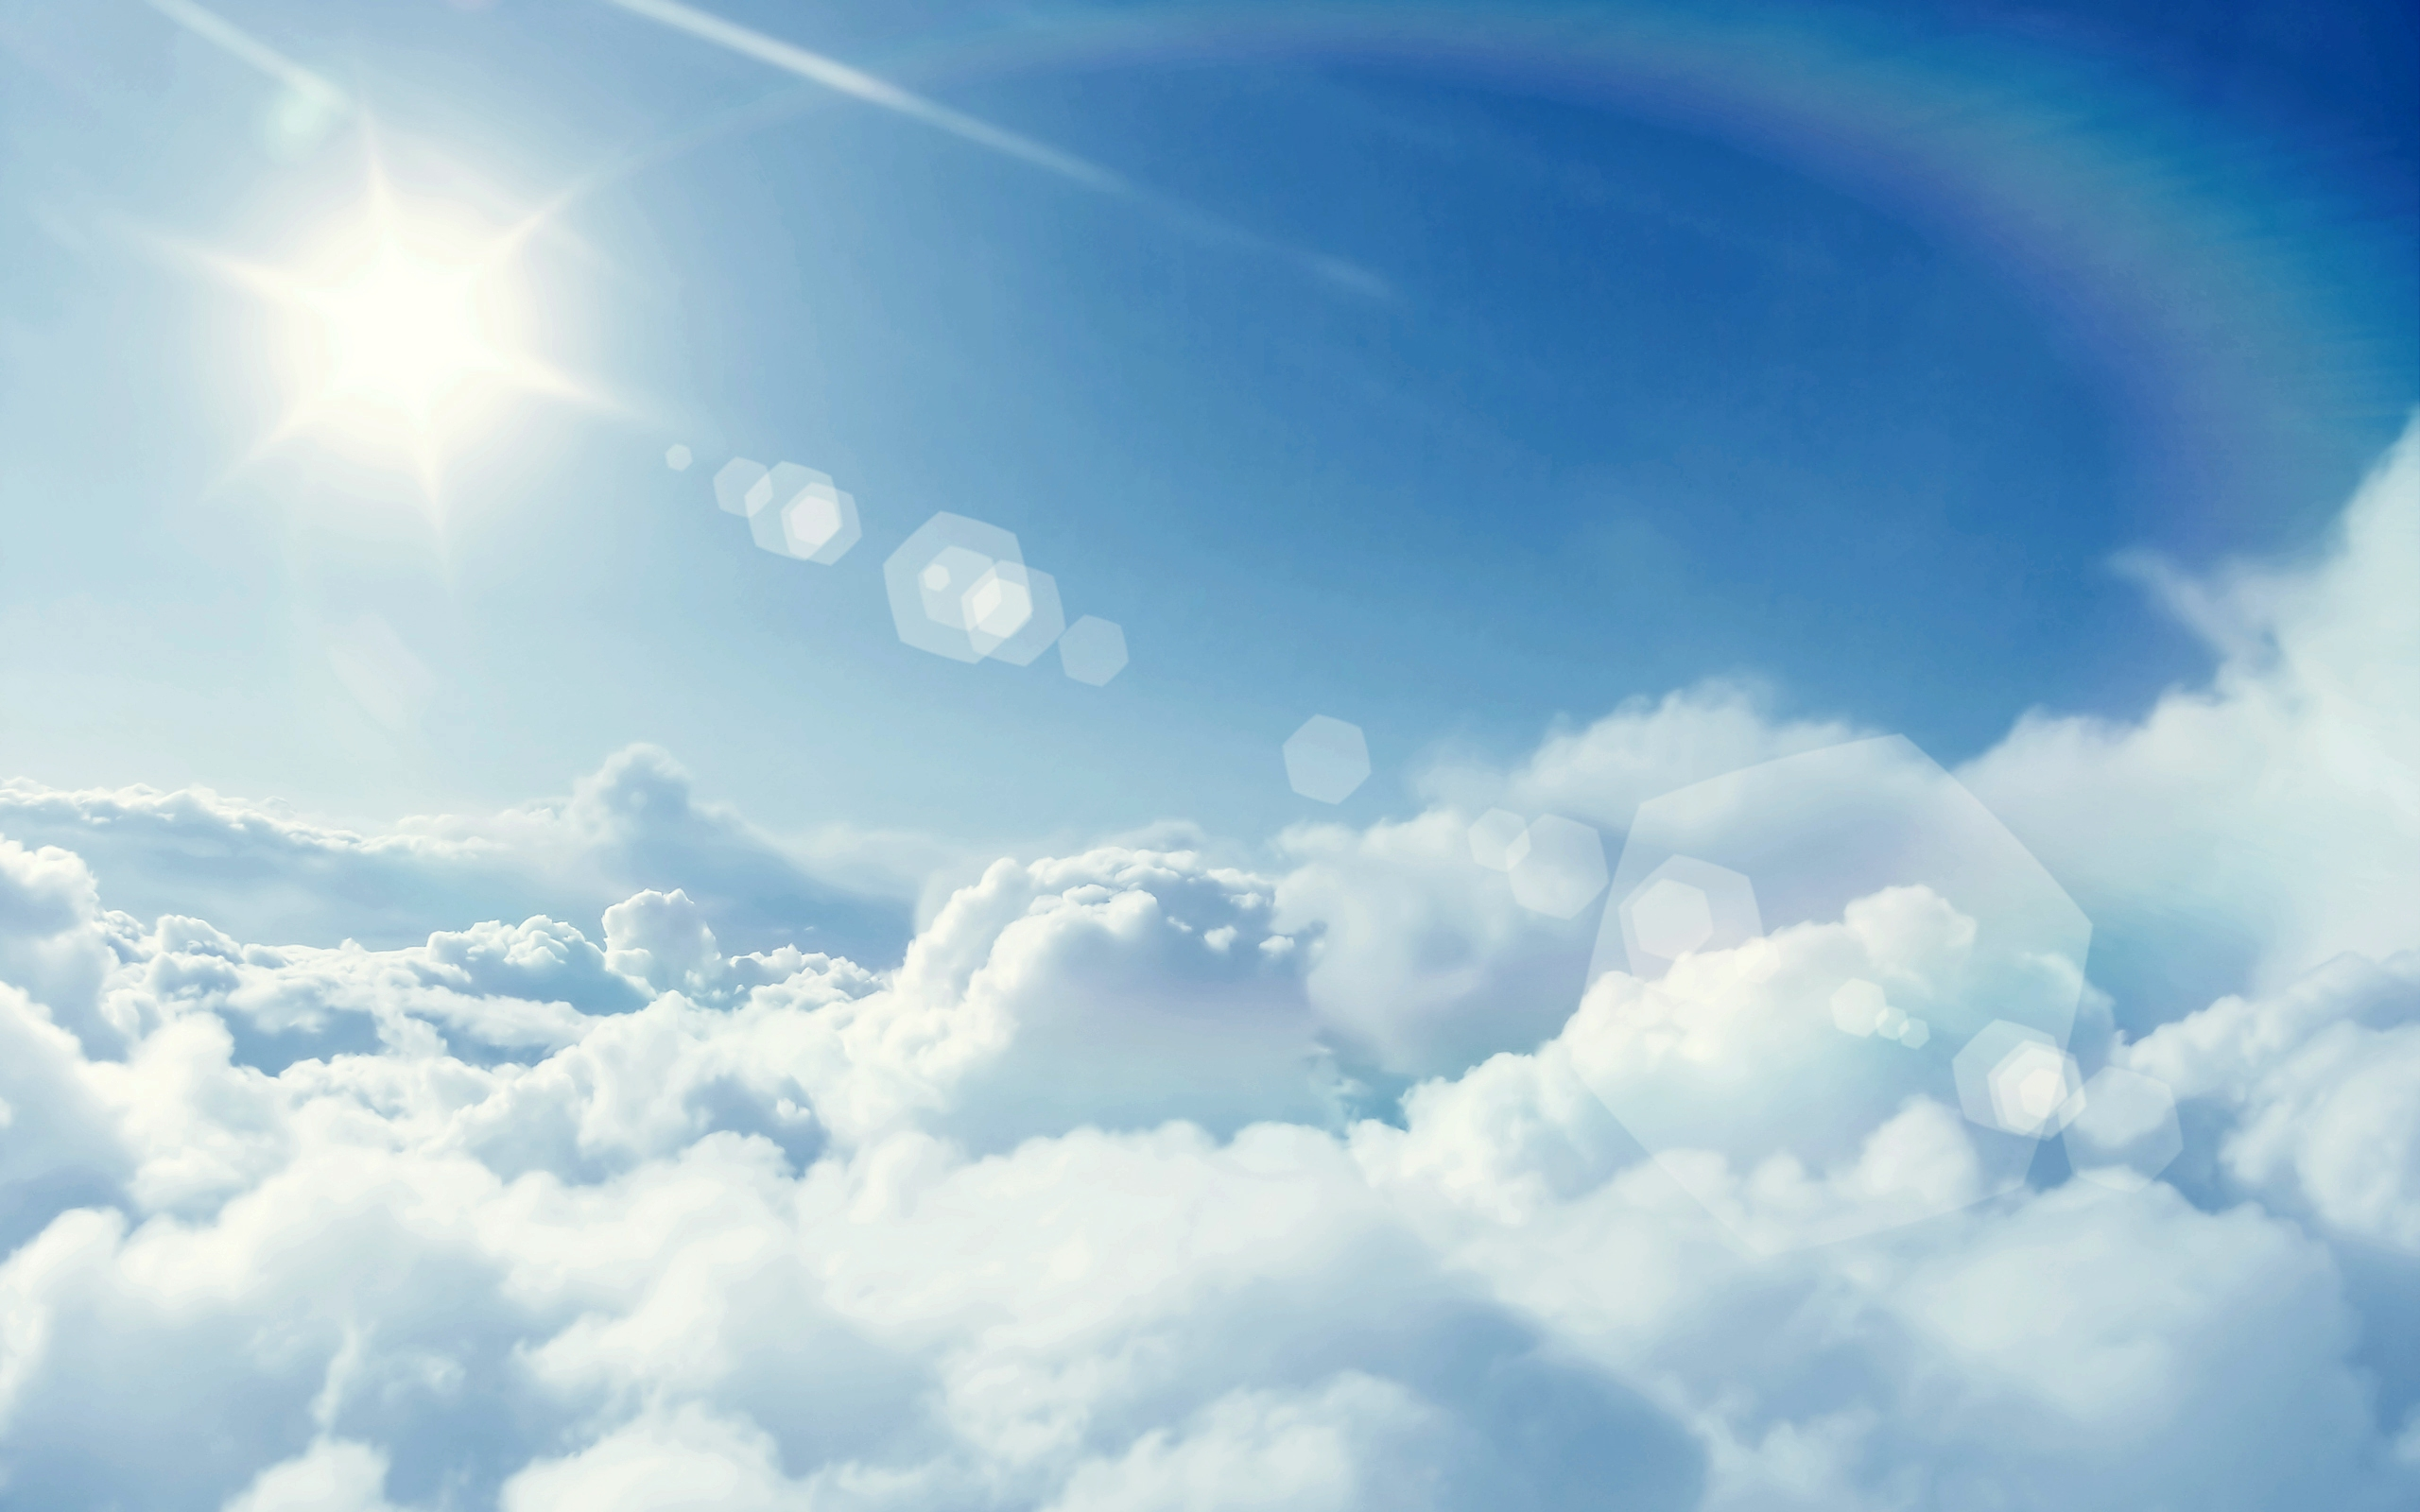 Astonishing Above The Clouds Wallpaper Xpx 2560x1600px